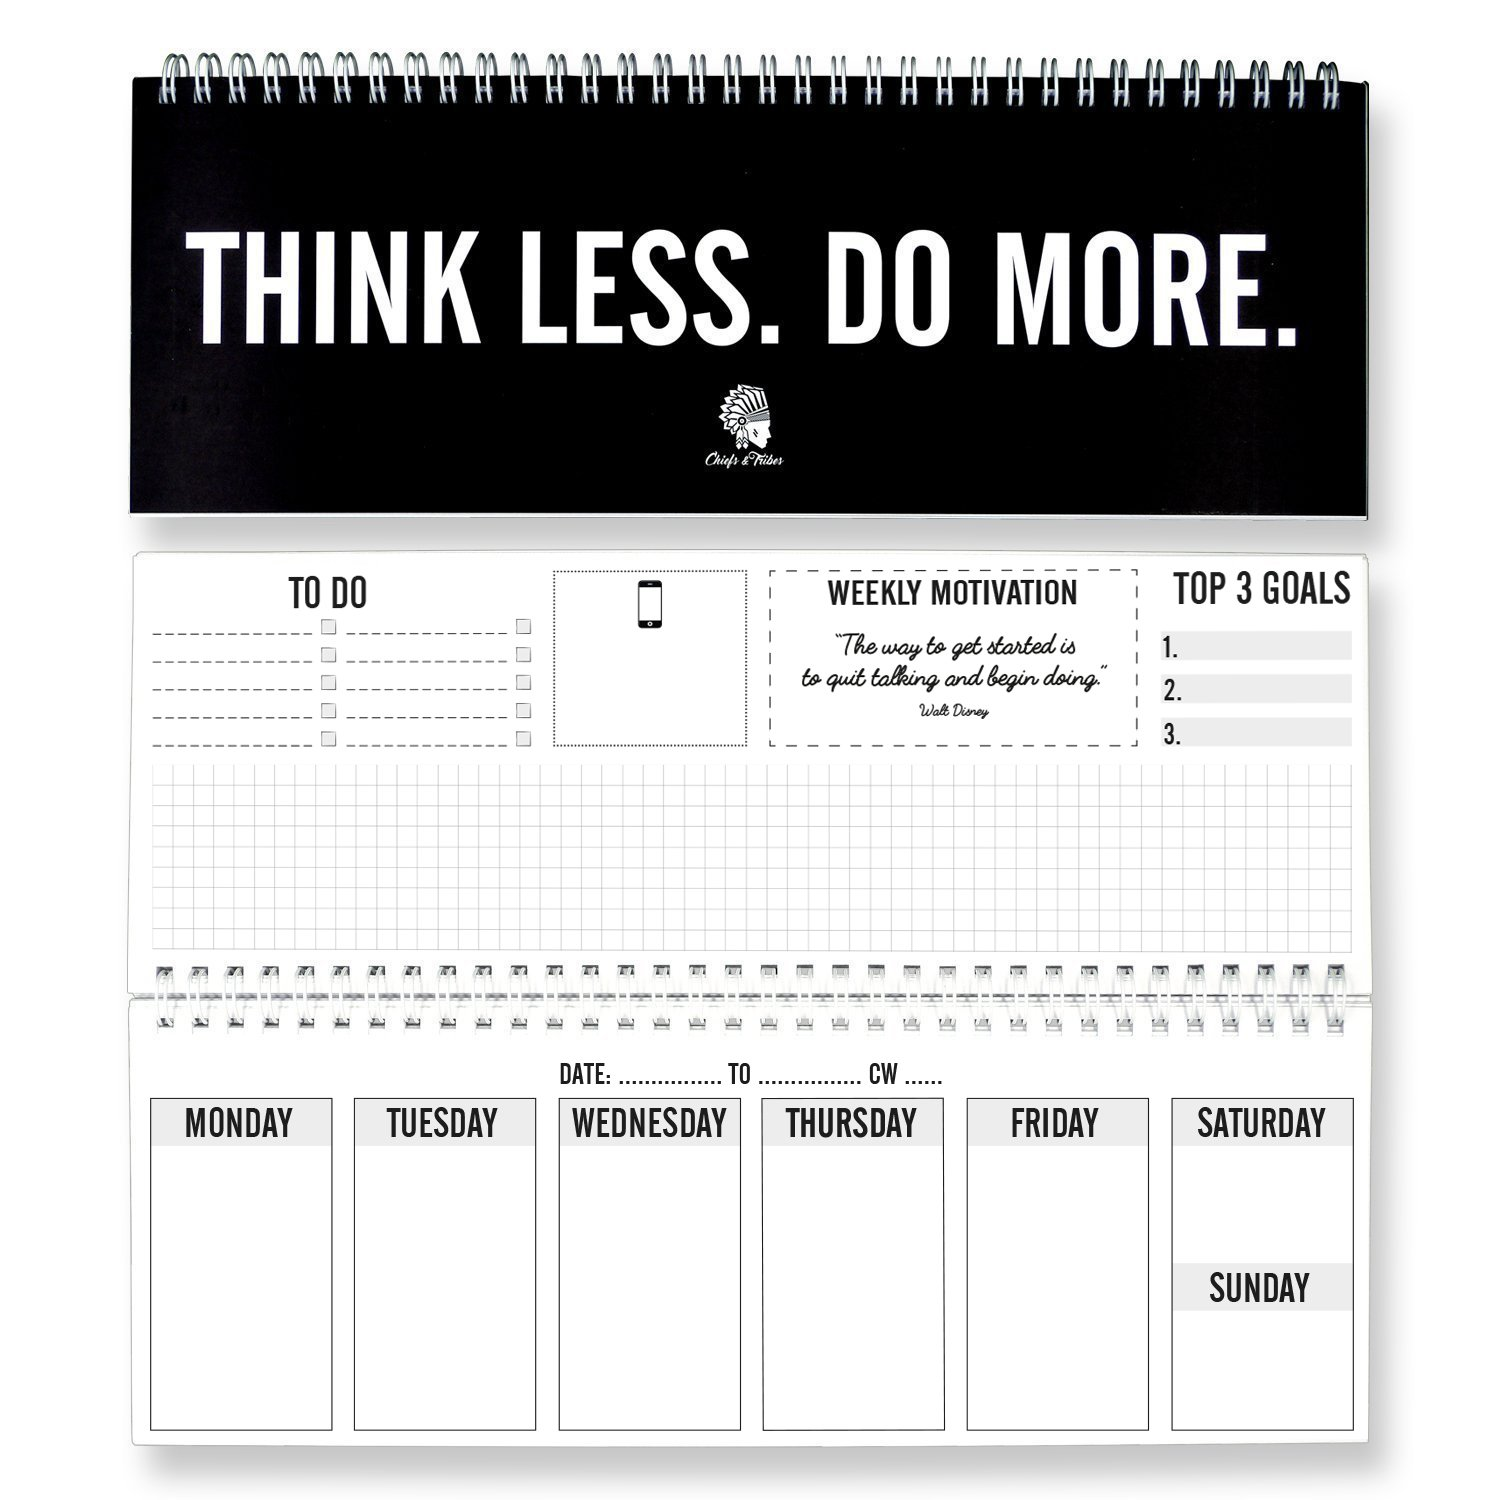 Chiefs & Tribes Weekly Desk Pad Calendar I to Do Notepad I Daily Desktop Planner I Undated Organizer for One Year I Schedule I Made in Germany